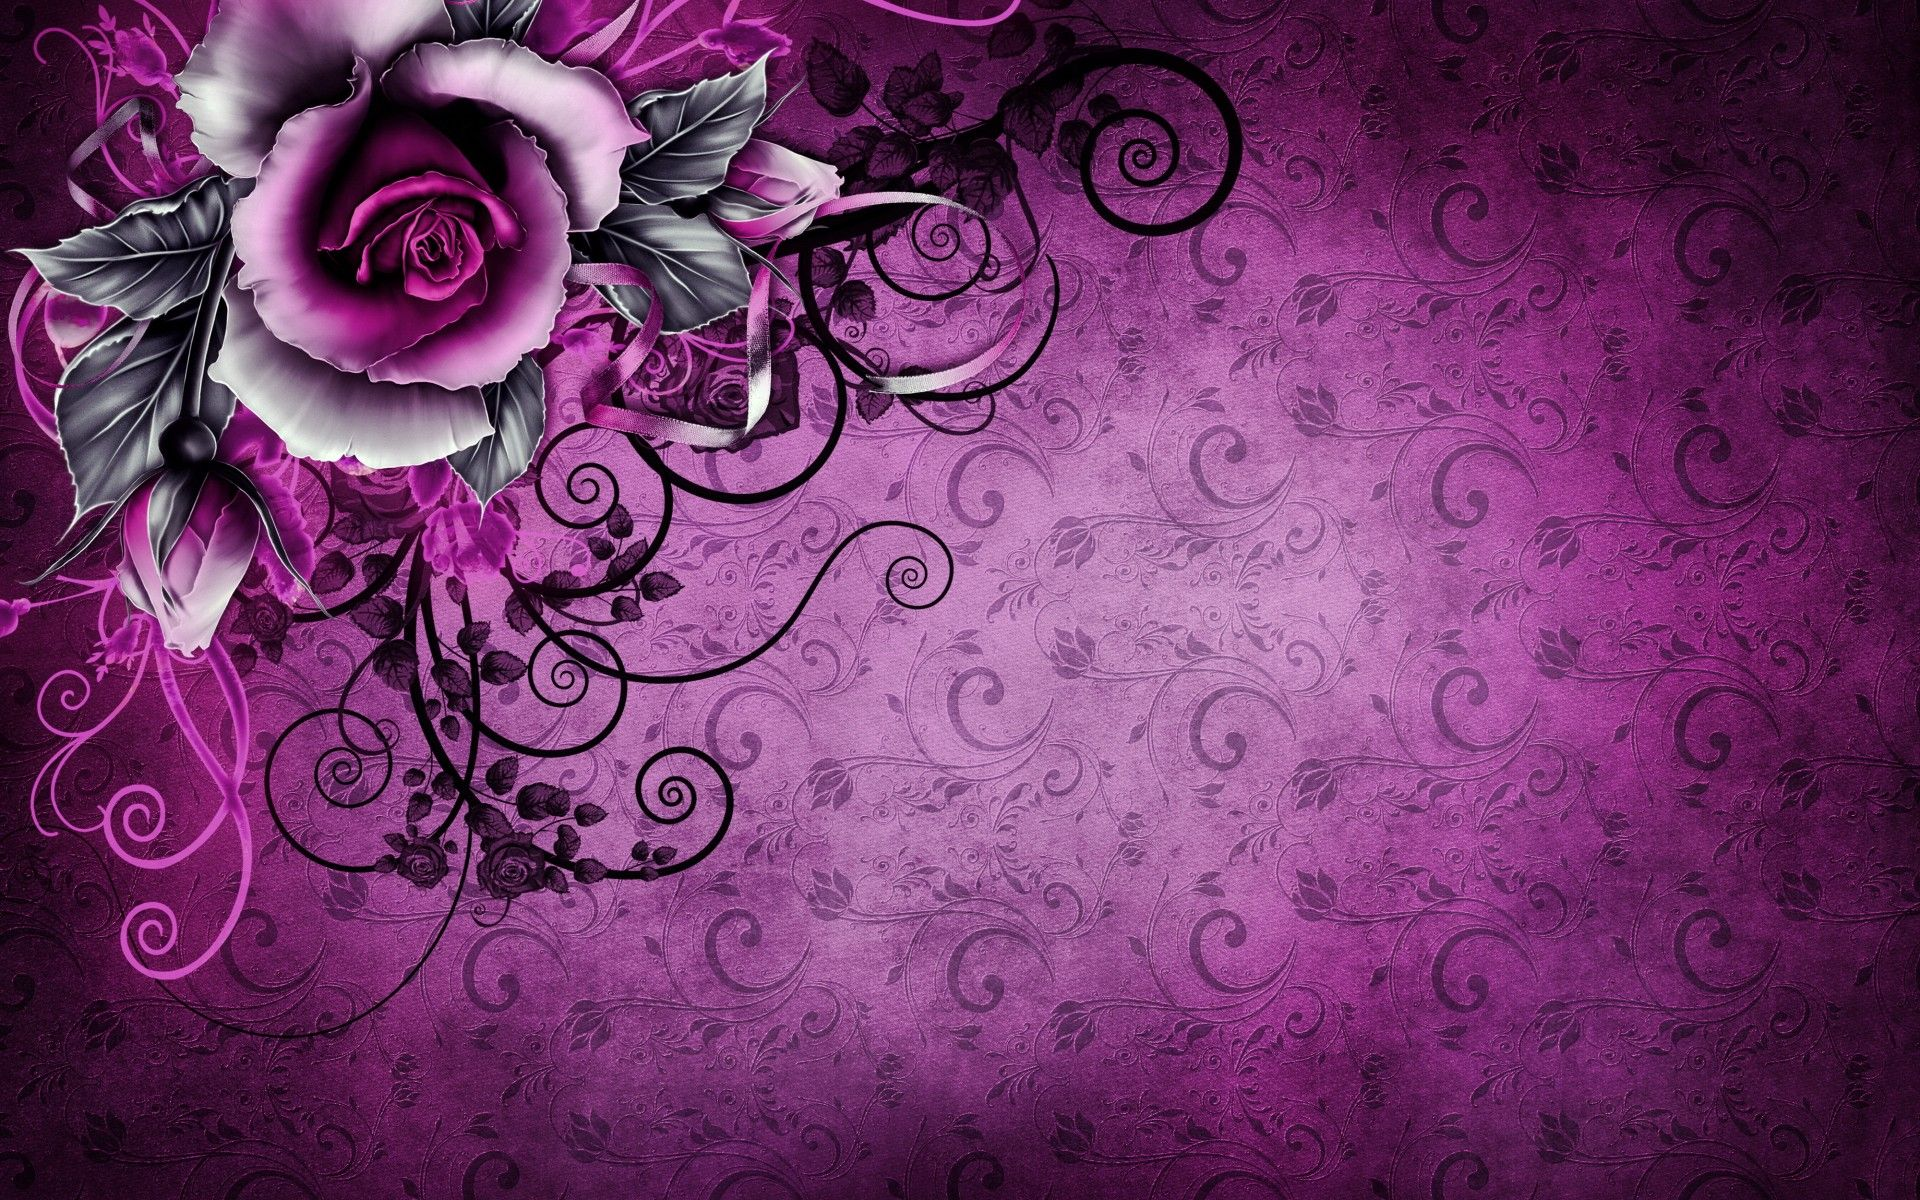 1920x1200 Vintage Rose Abstract Purple wallpapers   Vintage Rose ...